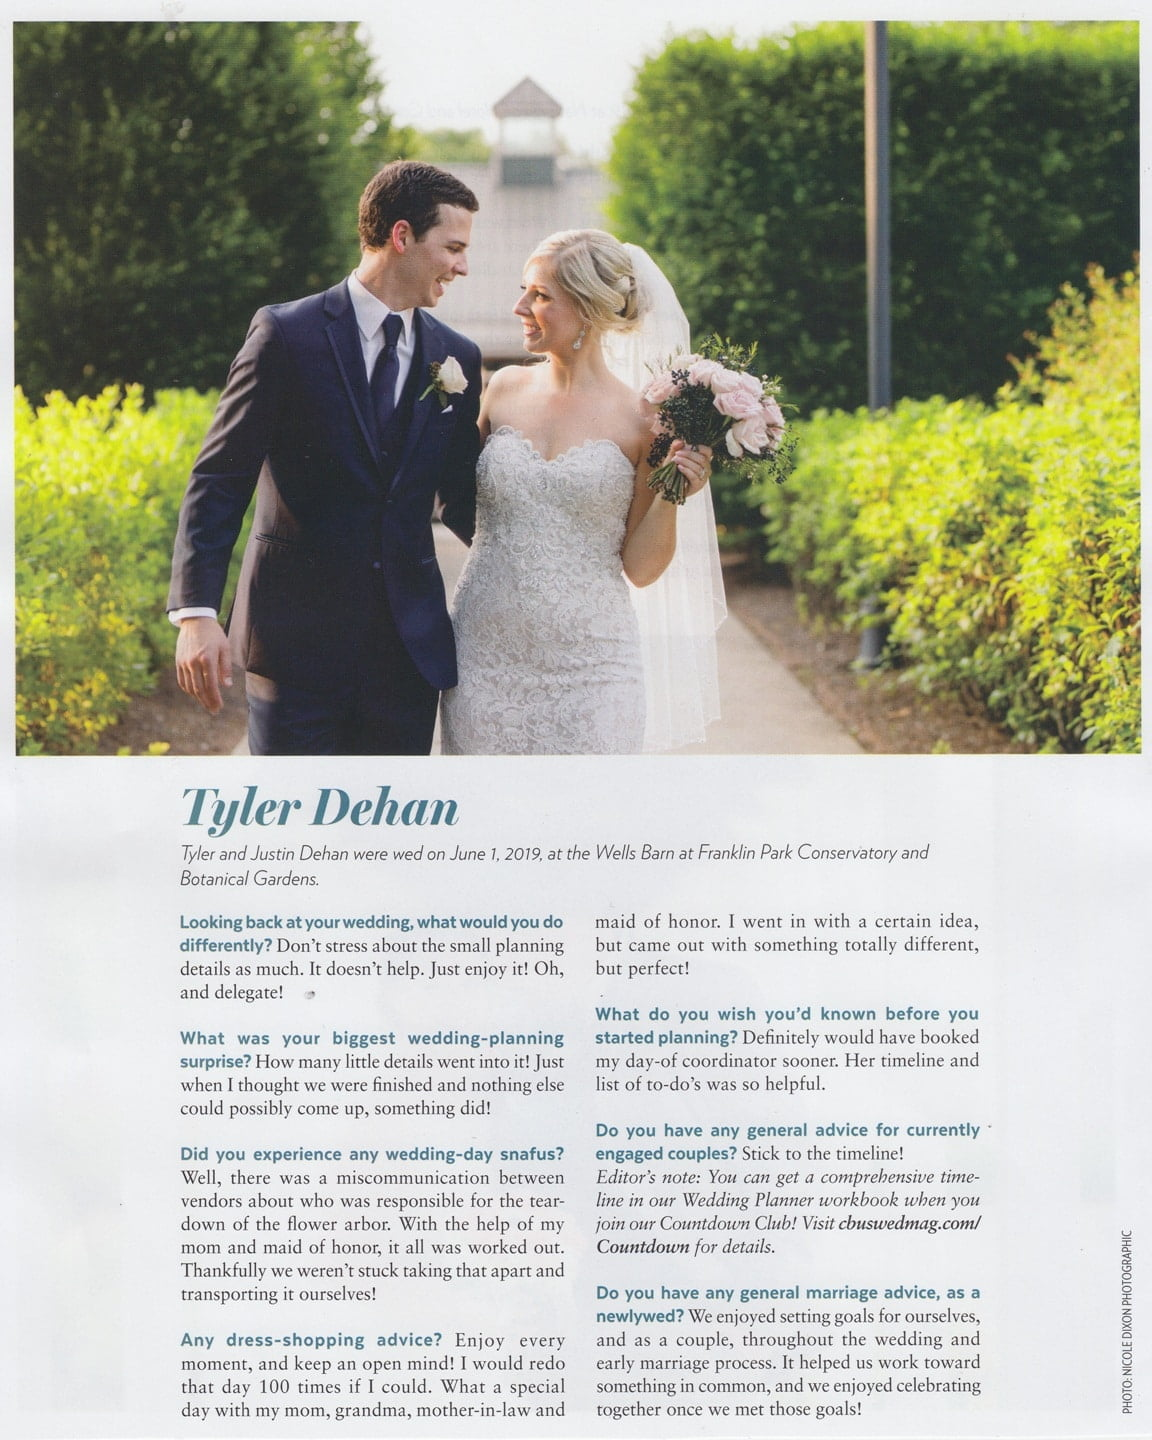 Columbus Weddings Magazine